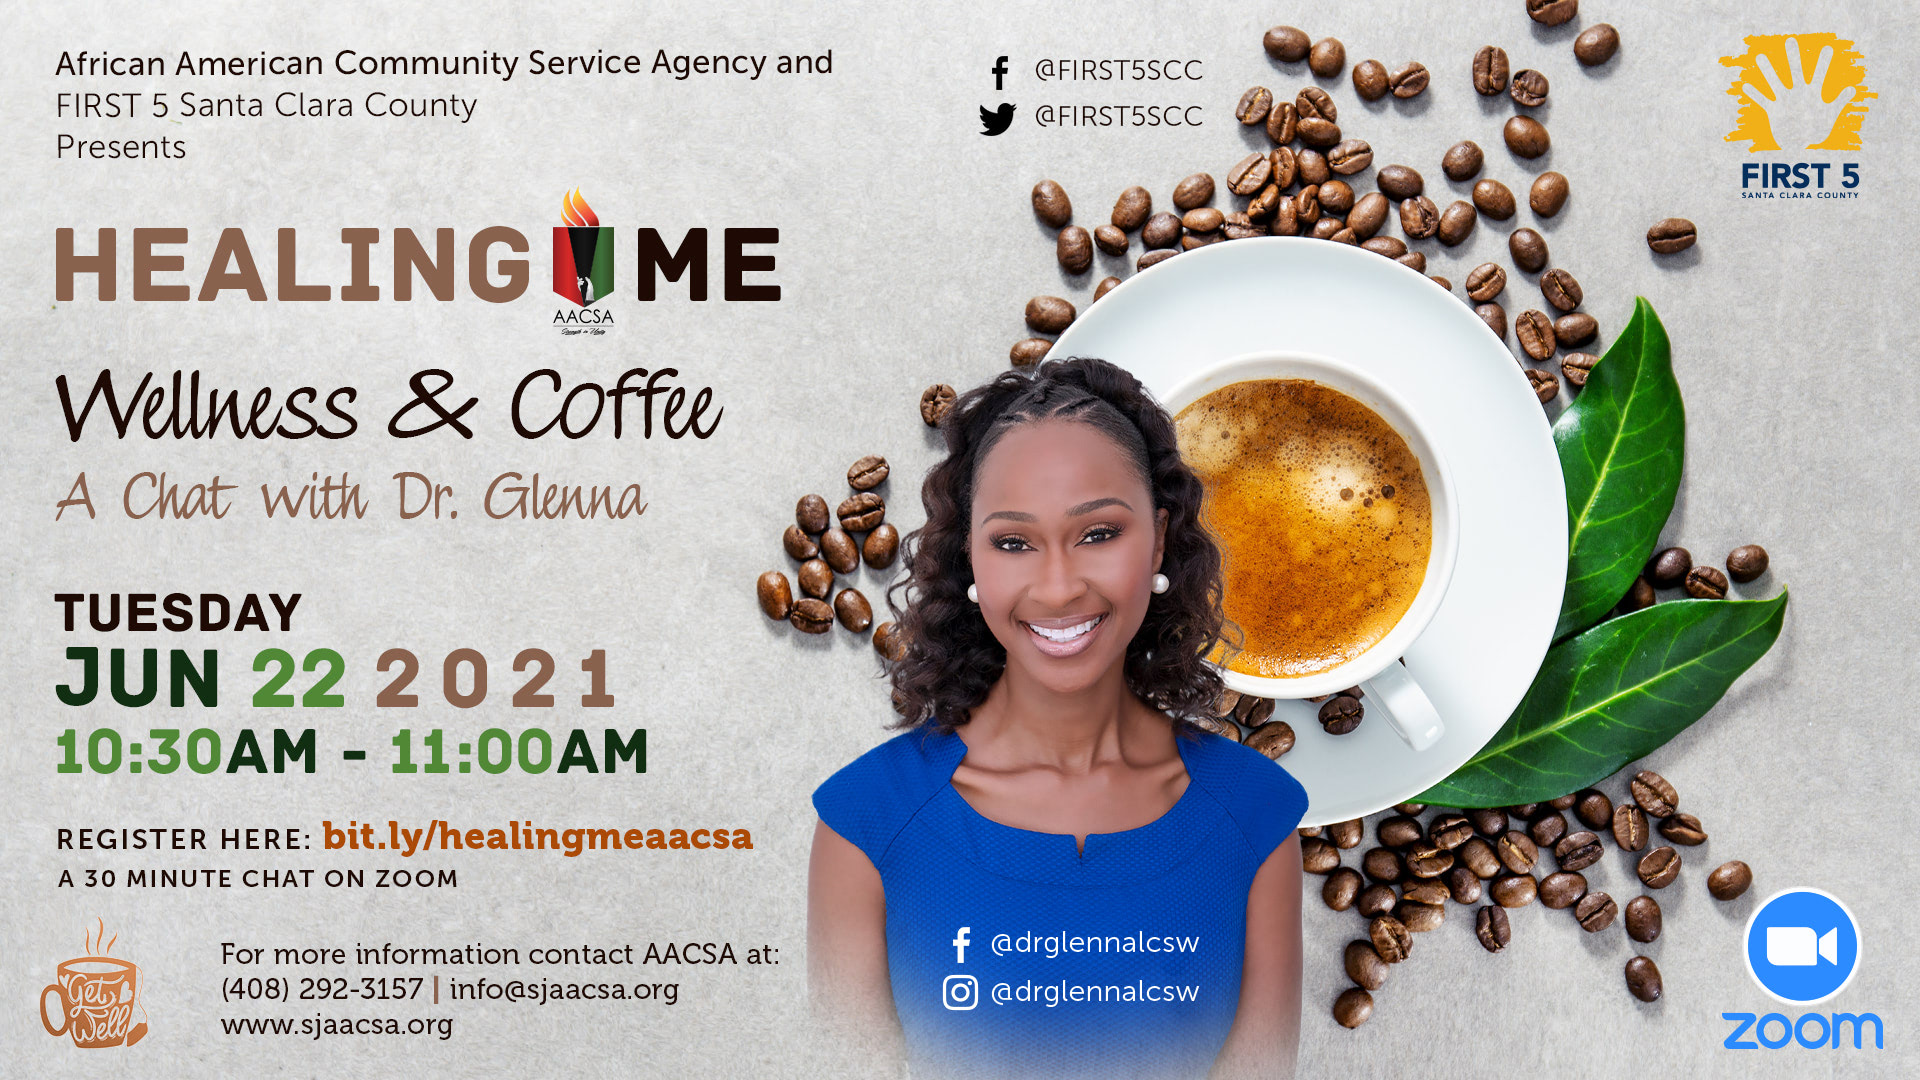 Banner for the AACSA event: Healing Me: Wellness & Coffee. A Chat with Dr. Glenna. Event Date: Tuesday June 22nd, 2021. 10:30am to 11:00am PST. On Zoom. To register, visit bit.ly/healingmeaacsa.